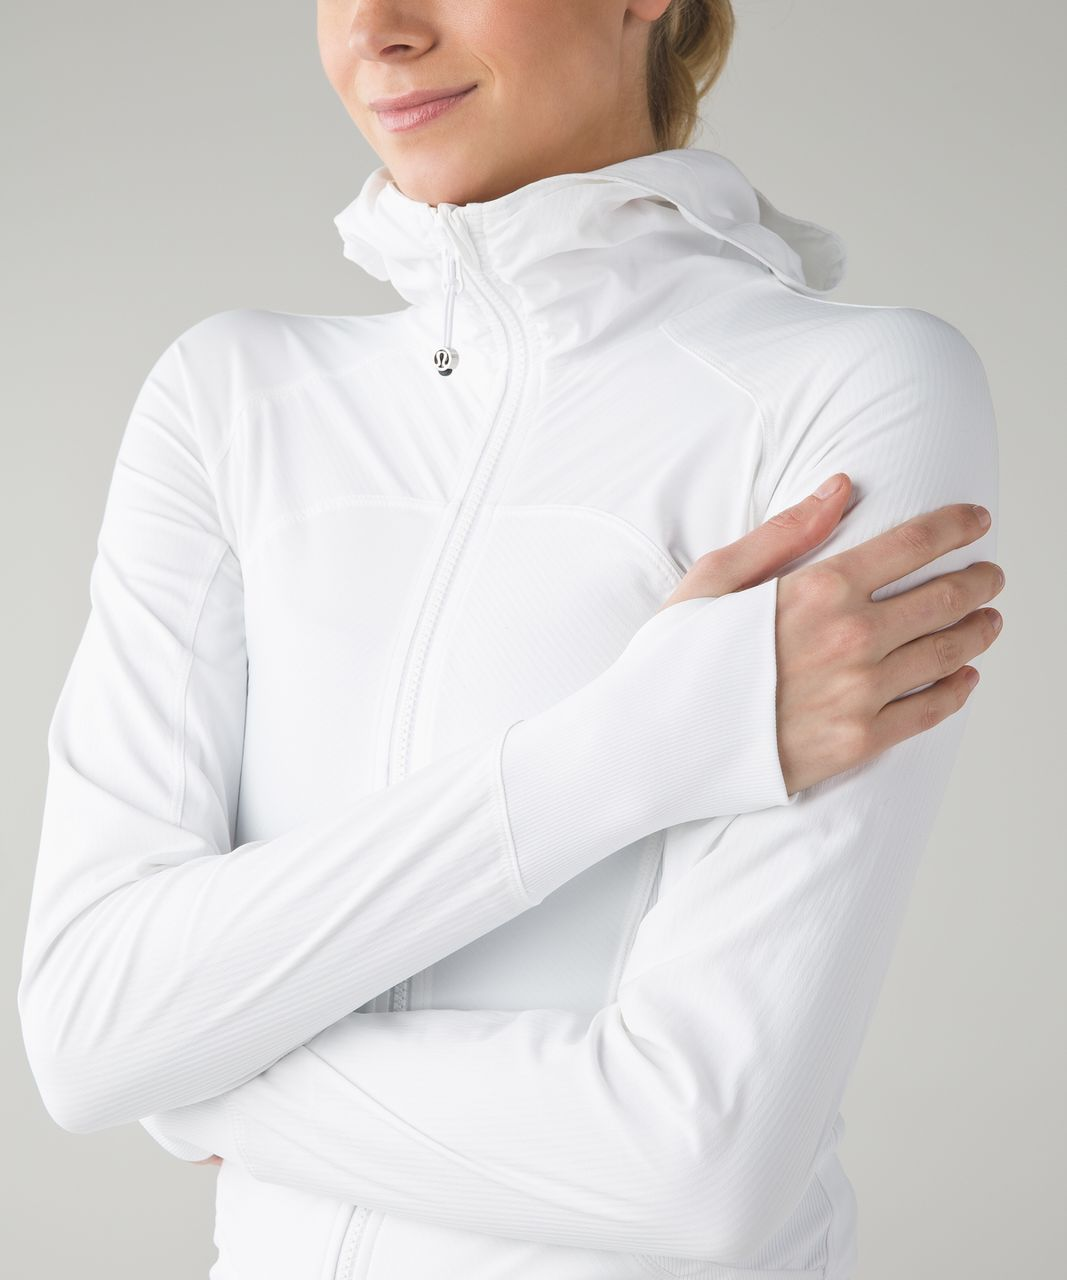 Lululemon In Flux Jacket - White